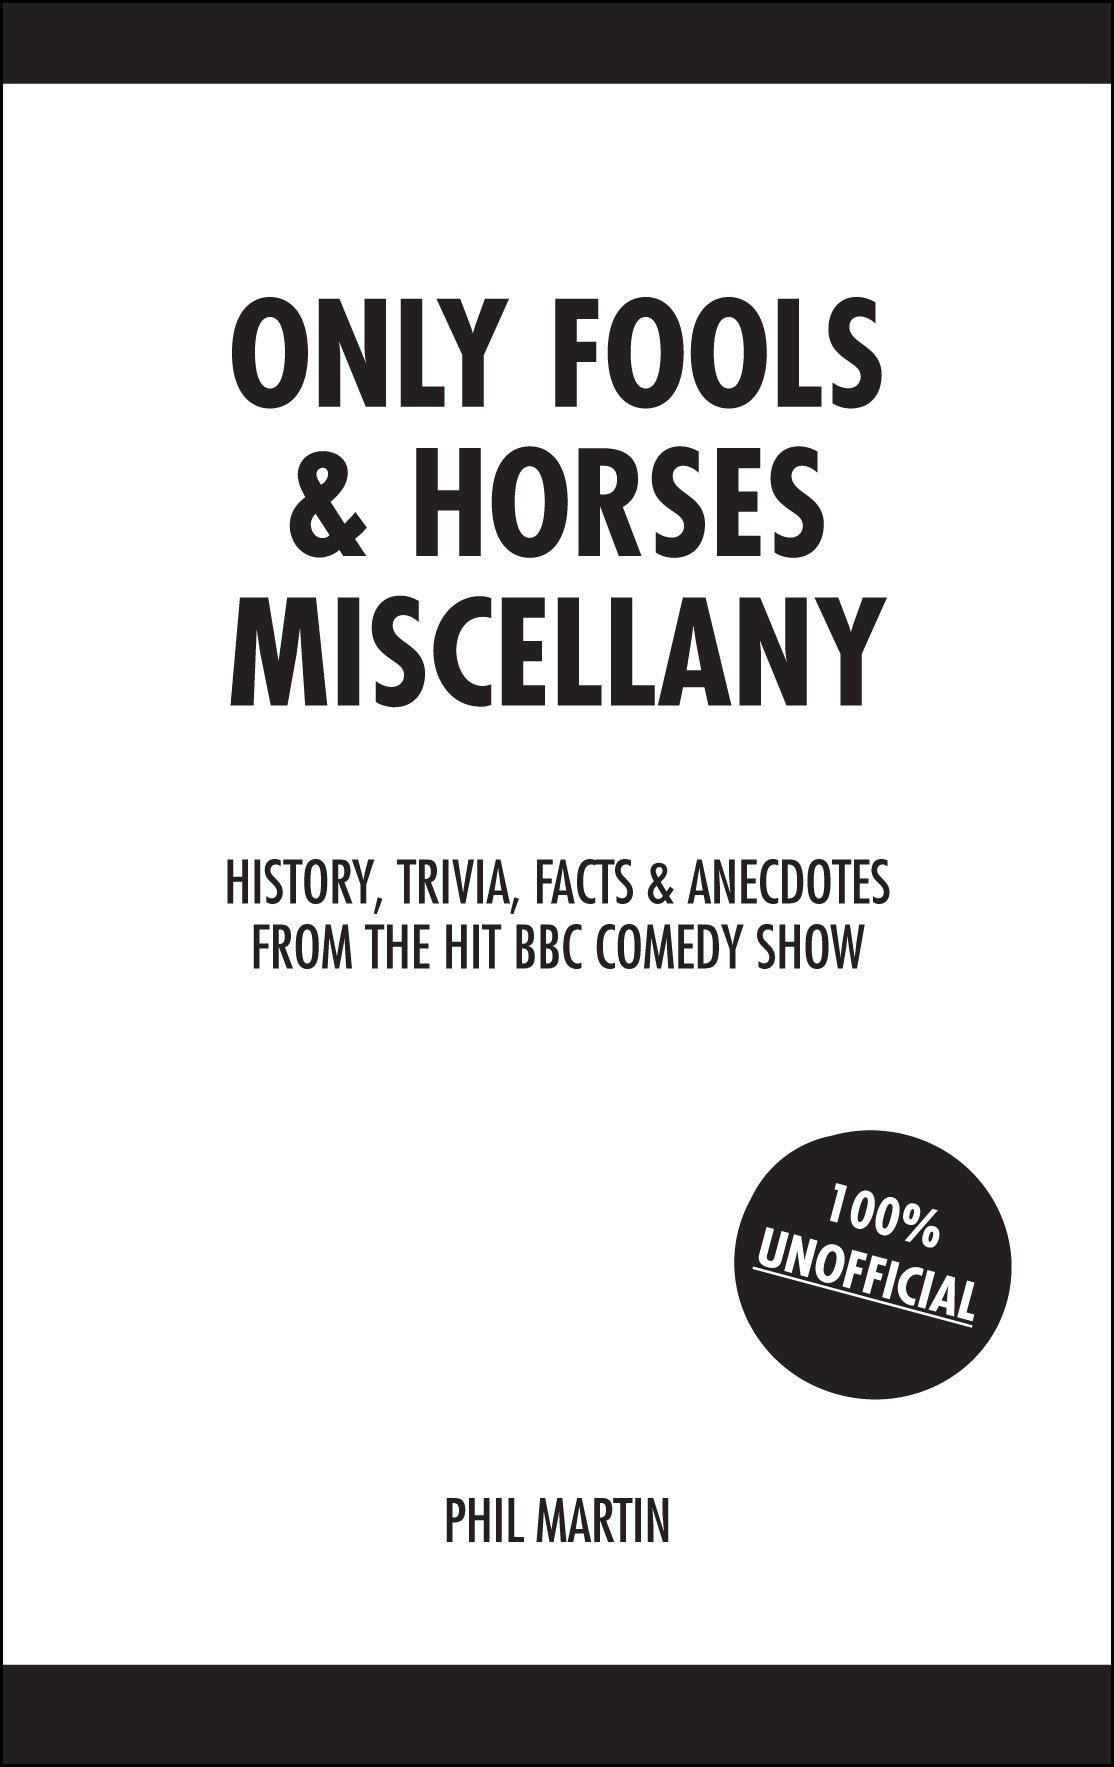 Download Only Fools and Horses Miscellany: History, Trivia, Facts & Anecdotes from the Hit BBC Comedy Show PDF